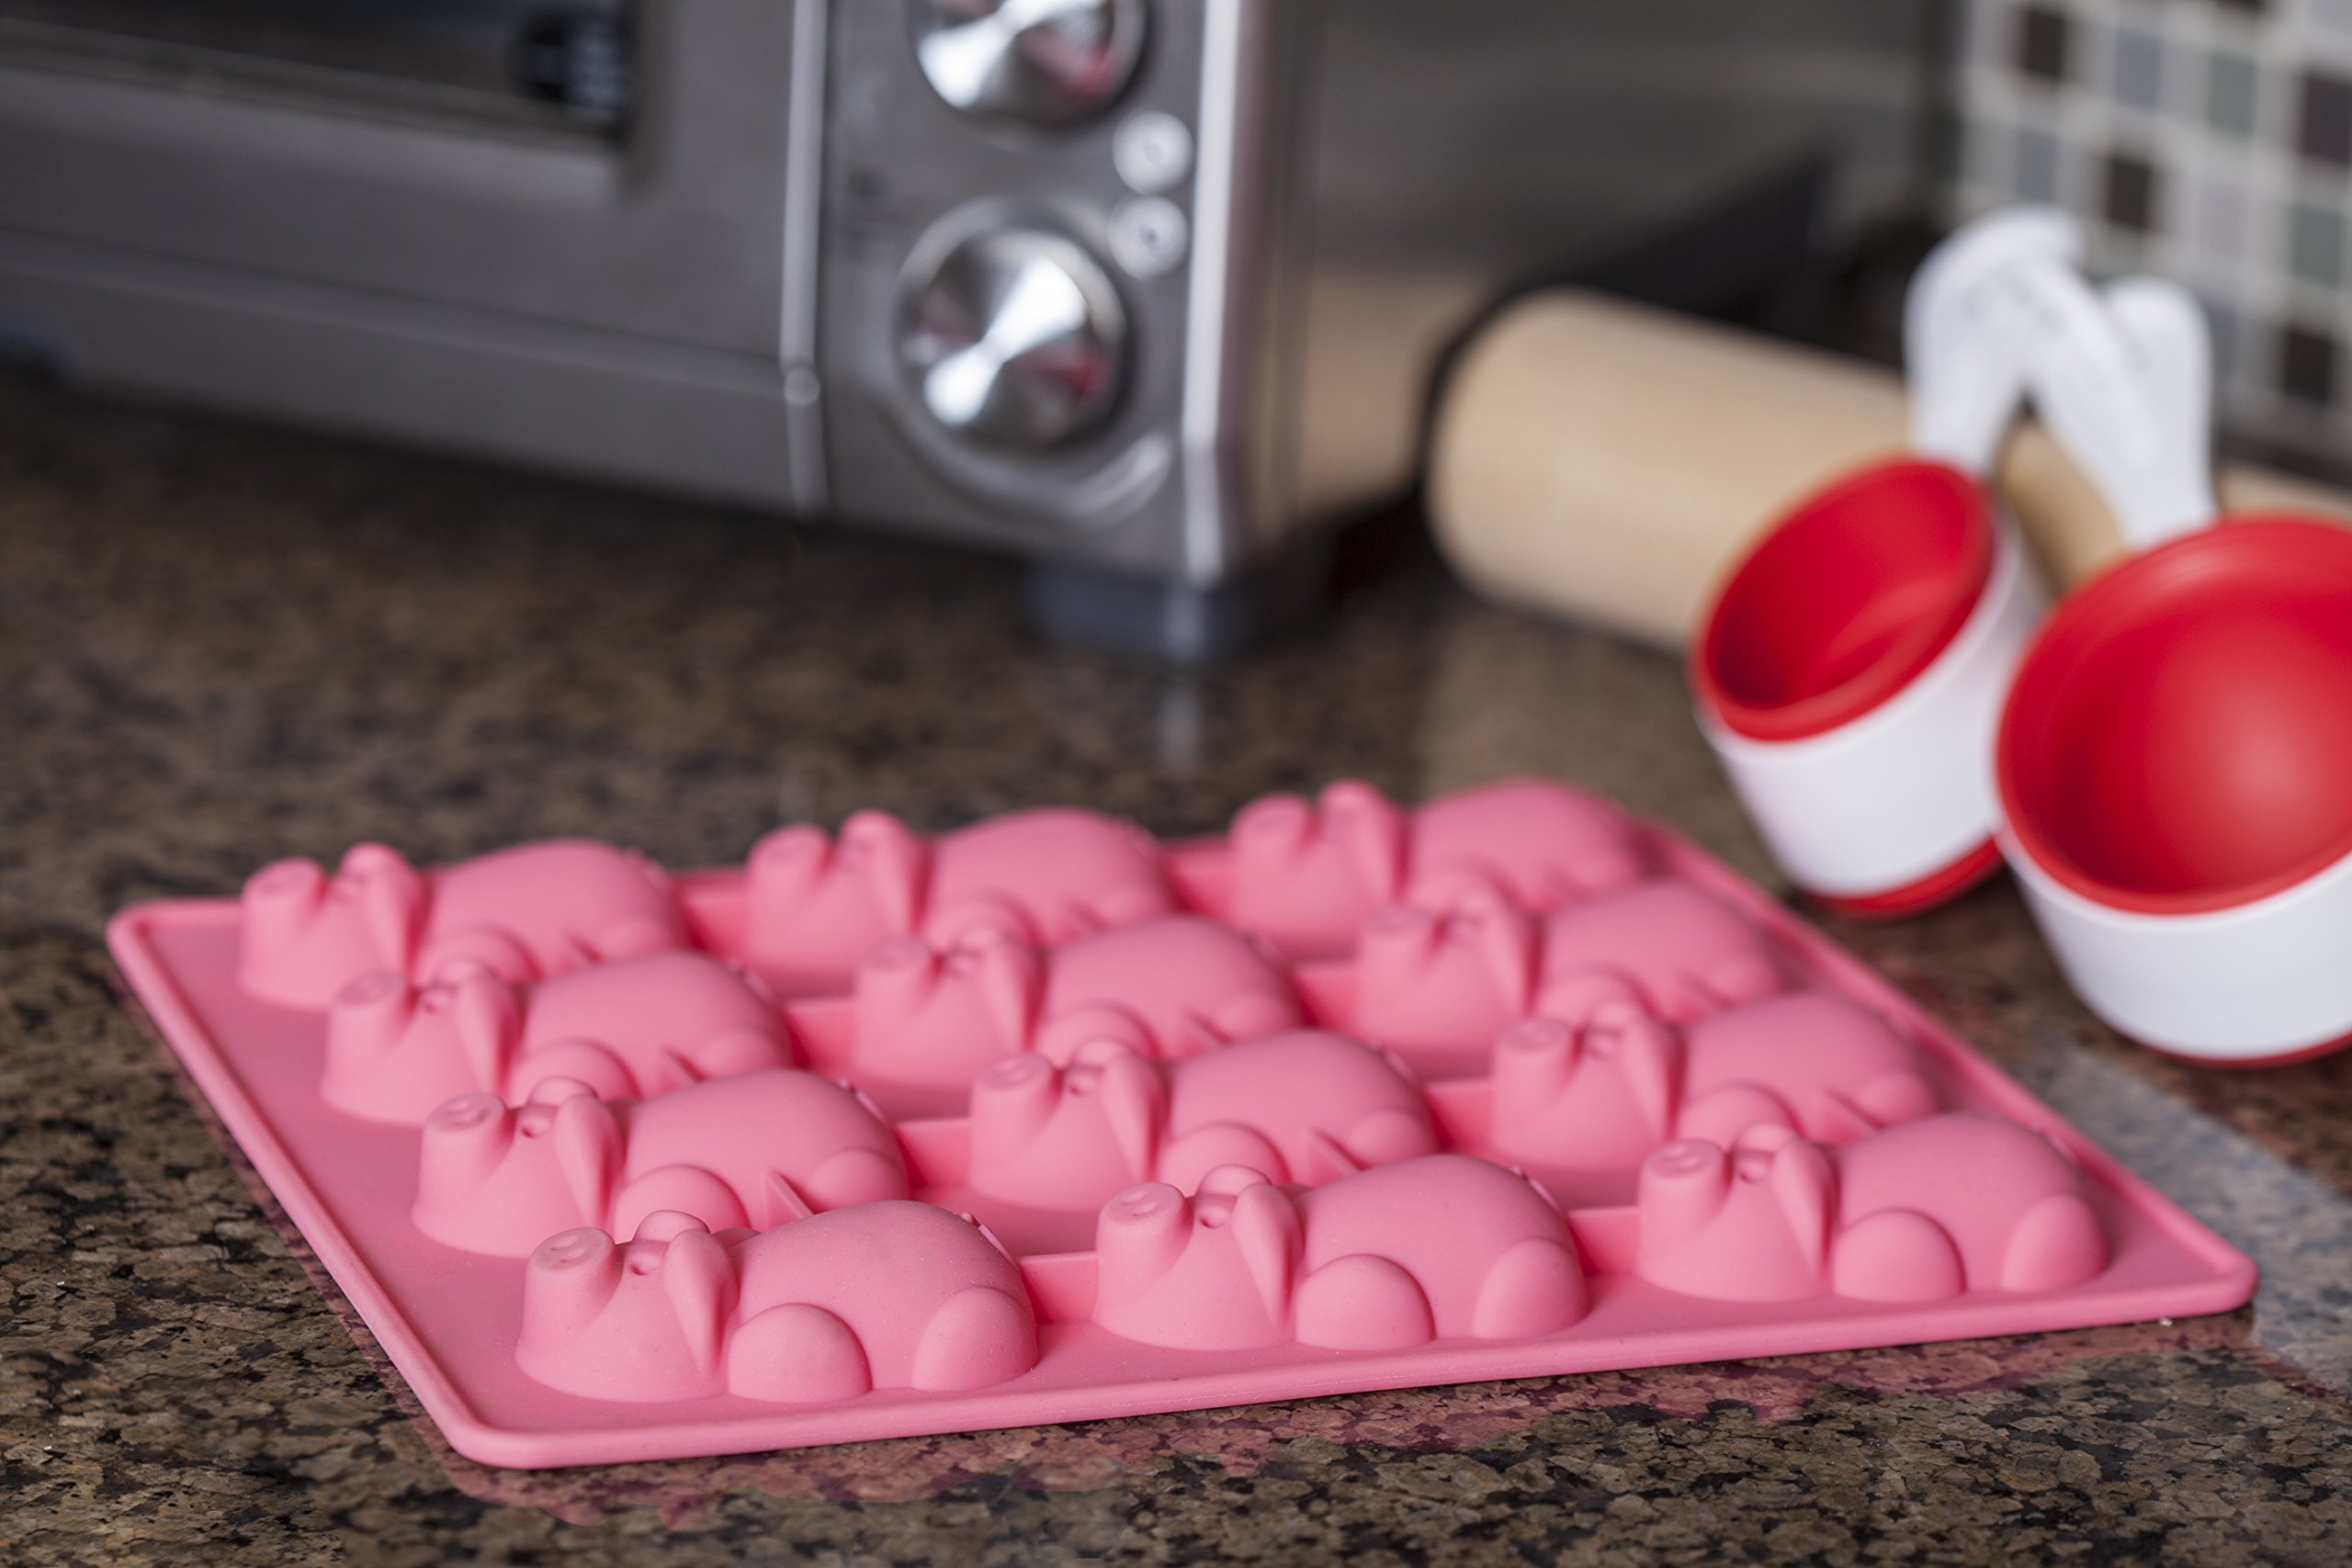 Mobi 12 Little Pigs in a Blanket Silicone Baking Mold, Pink by MOBI (Image #6)